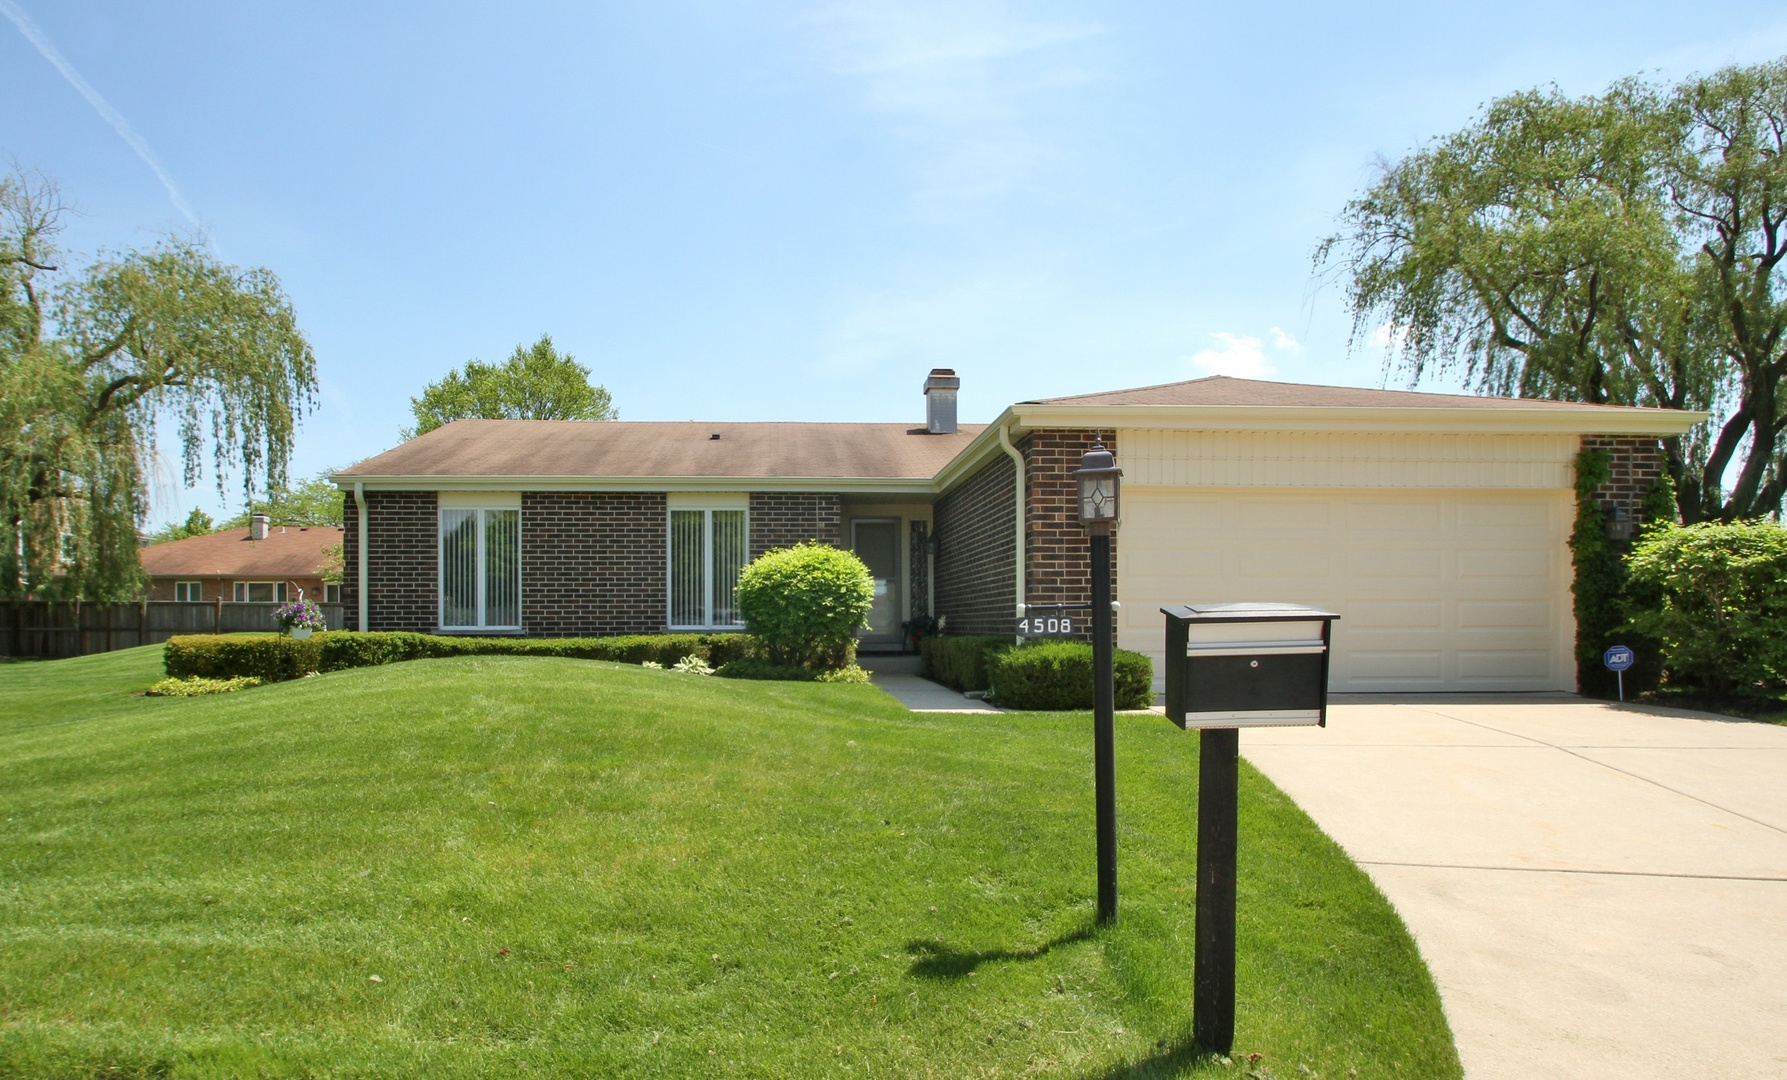 4508 Lindenwood Lane, Northbrook in Cook County, IL 60062 Home for Sale